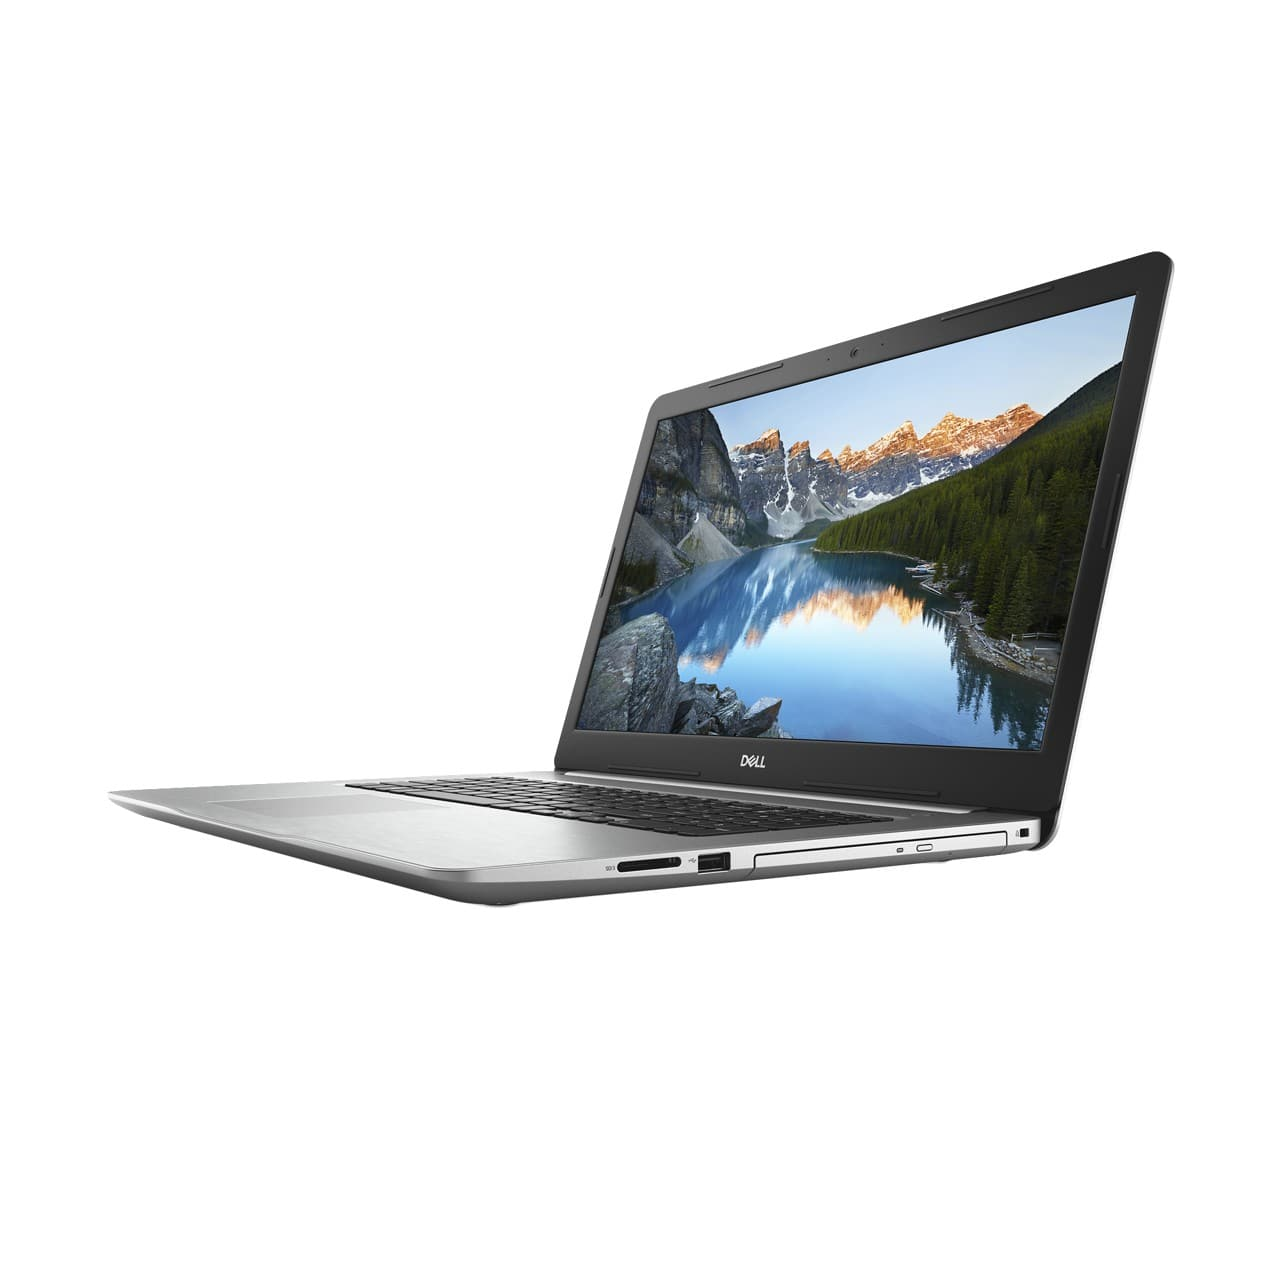 """Dell Inspiron 17 5000 Laptop: i5-8250U, 17.3"""" 1080p, 1TB HDD, 8GB DDR4, Graphics 620 $500 + free s/h"""